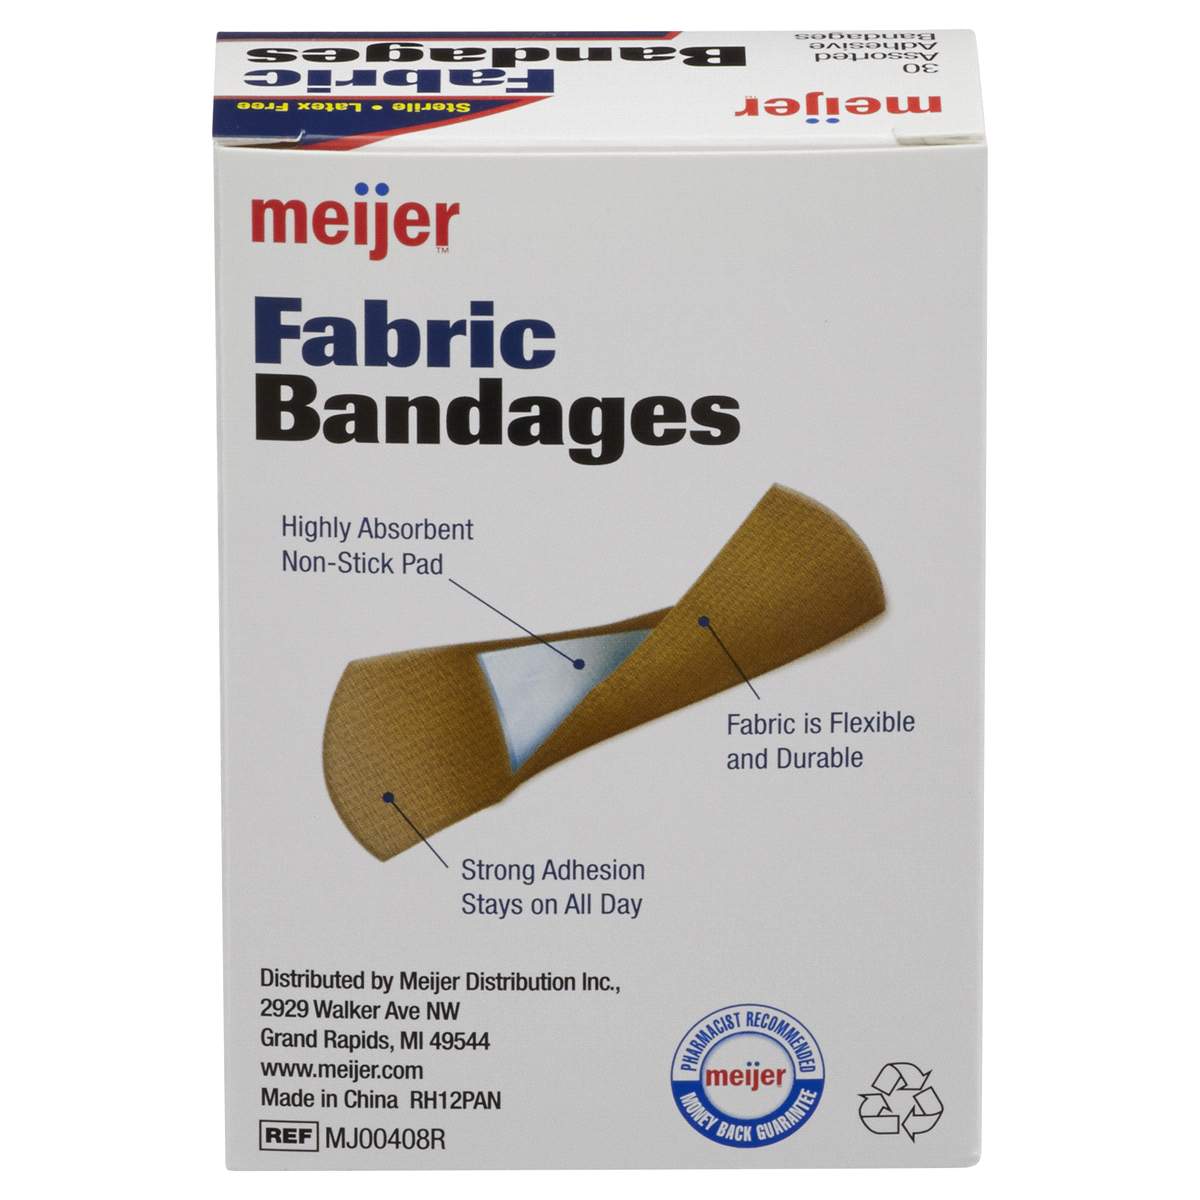 slide 4 of 6, Meijer Flexible Fabric Adhesive Bandages,